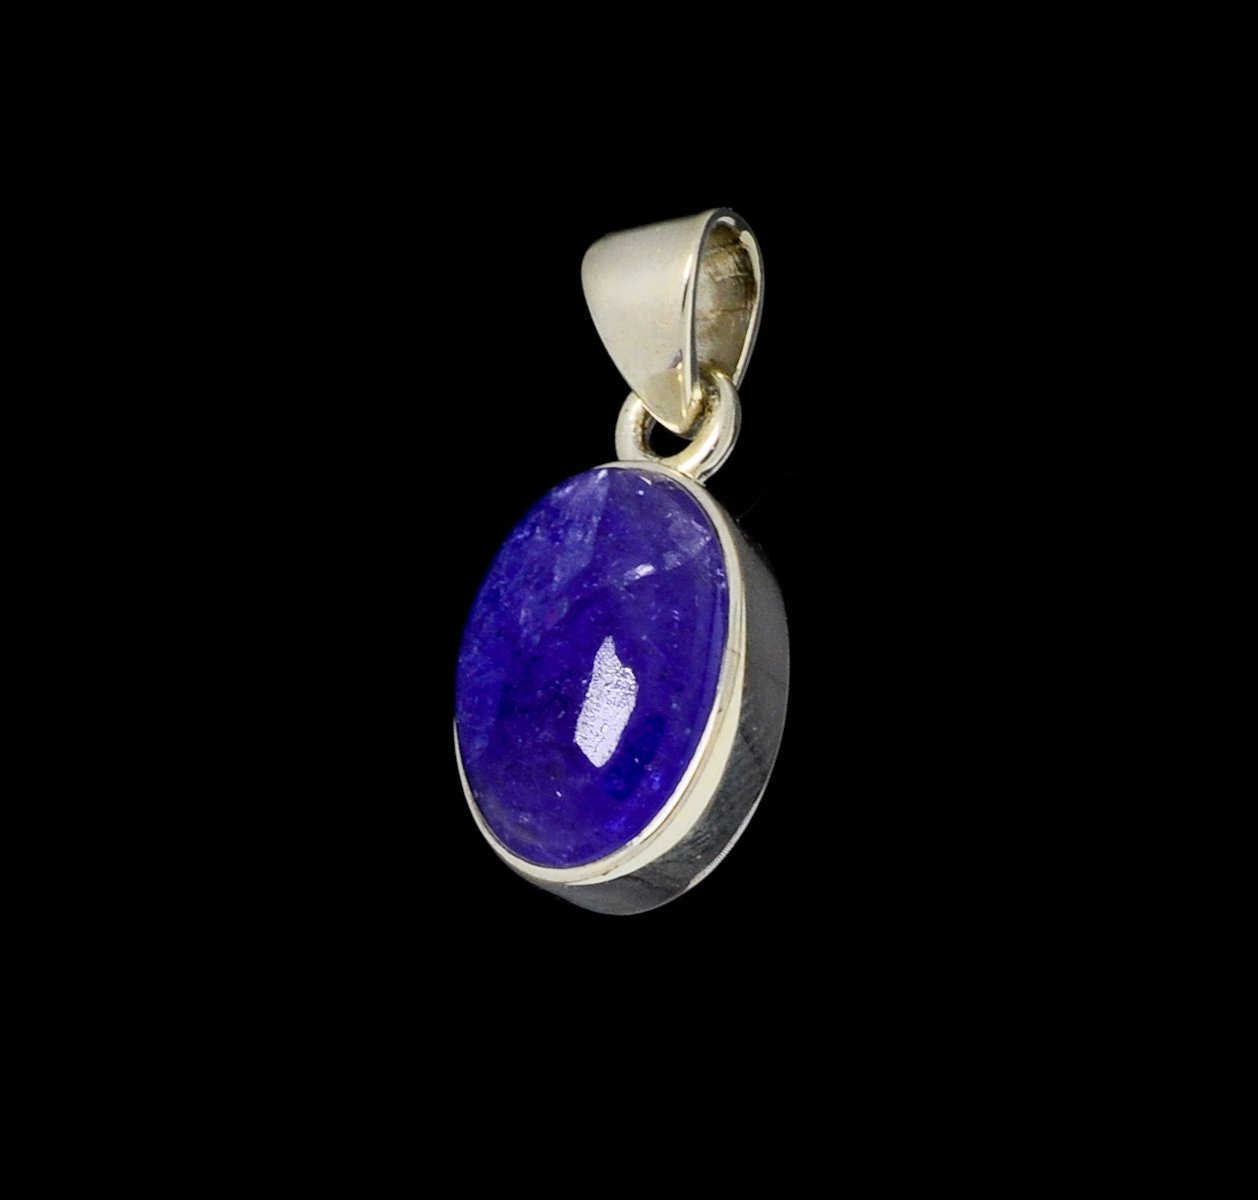 Tanzanite Pendant 15mm x 10mm Oval Cut